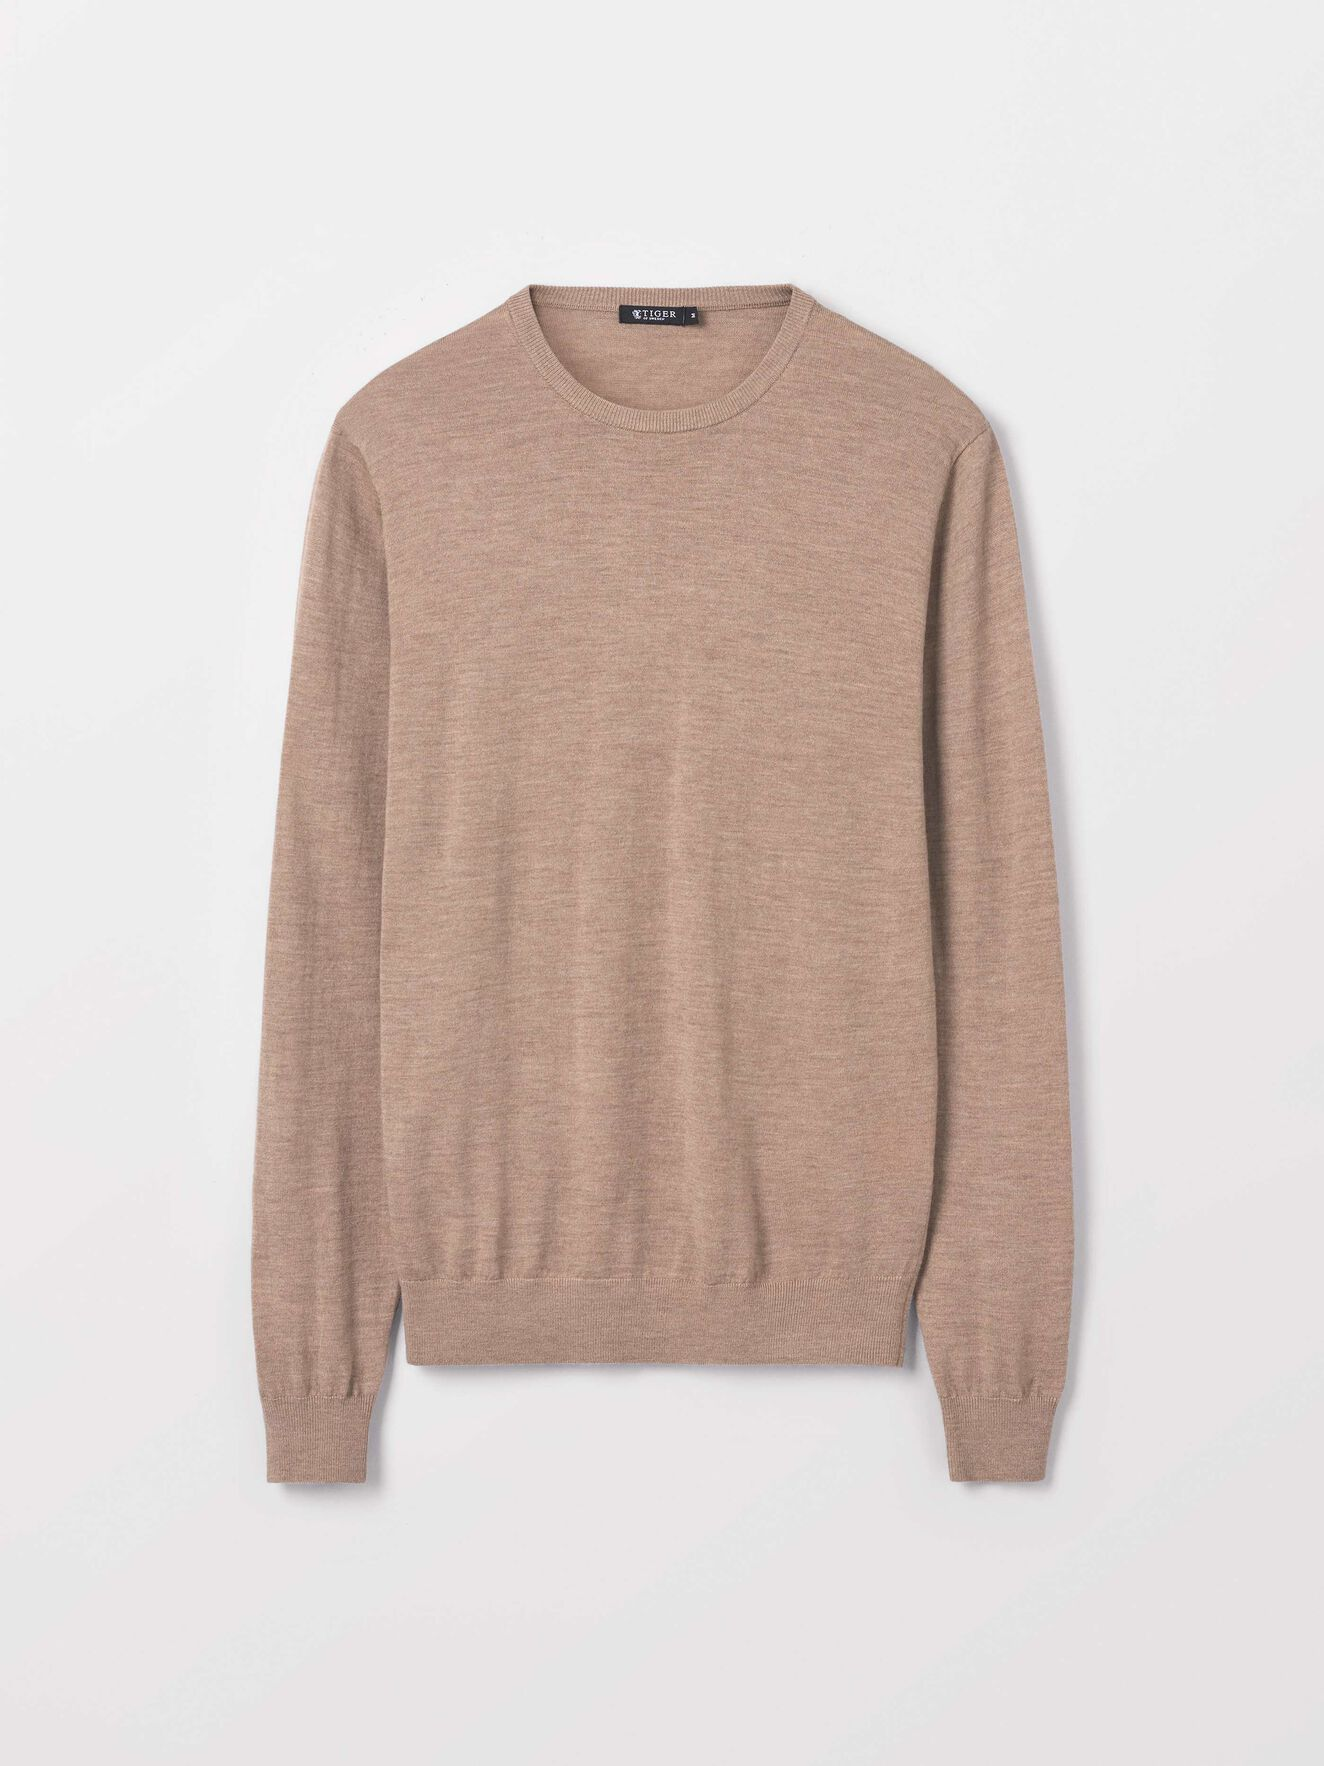 Nichols Pullover in Macchiato from Tiger of Sweden